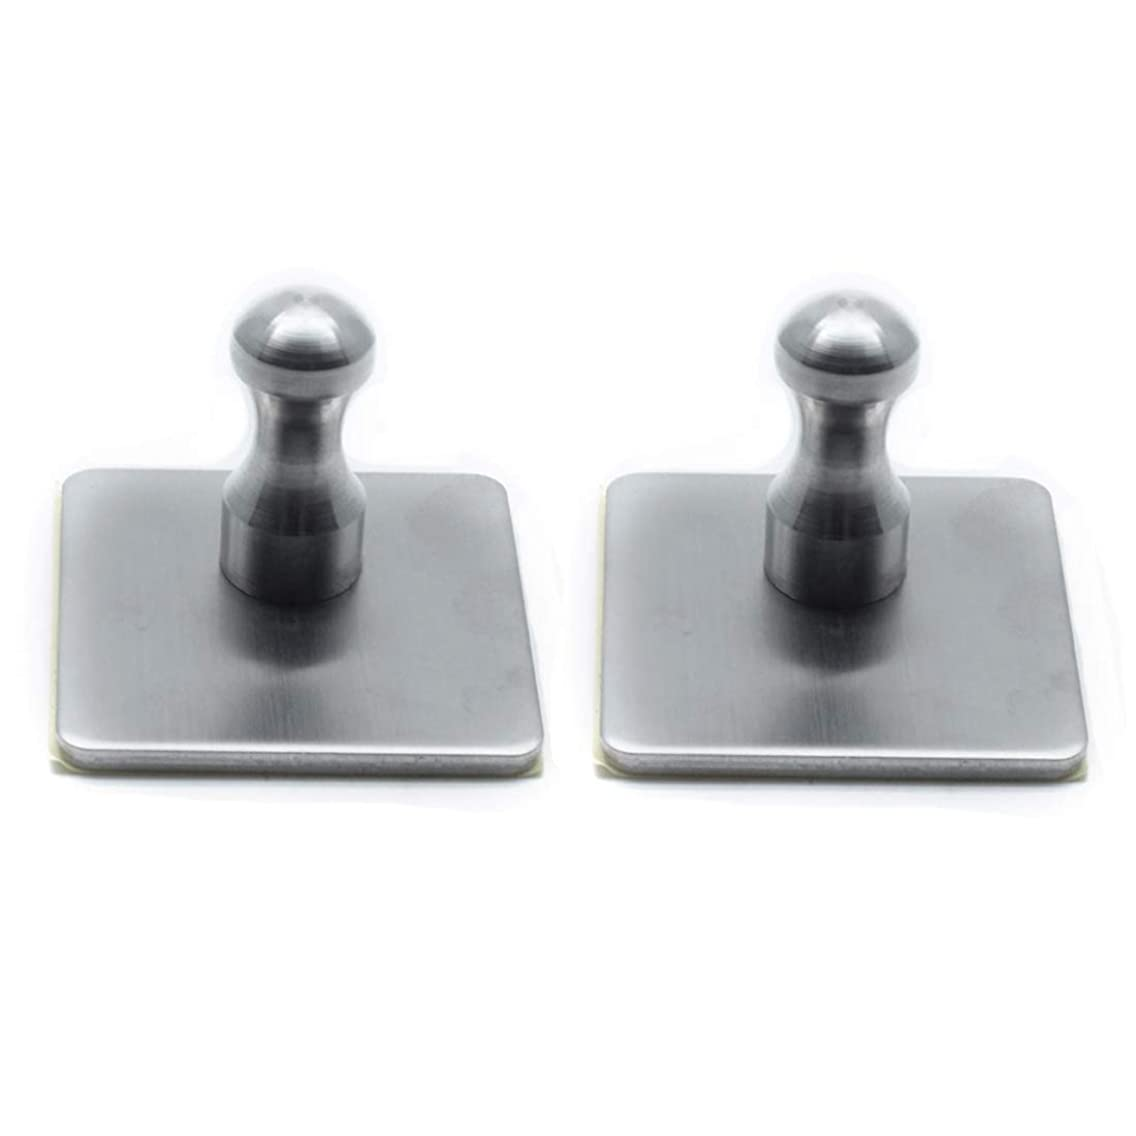 Autoly Towel Hook Self Adhesive Hooks Stainless Steel Hanging Wall Hook for Robe Coat Bathroom, 2 Pack